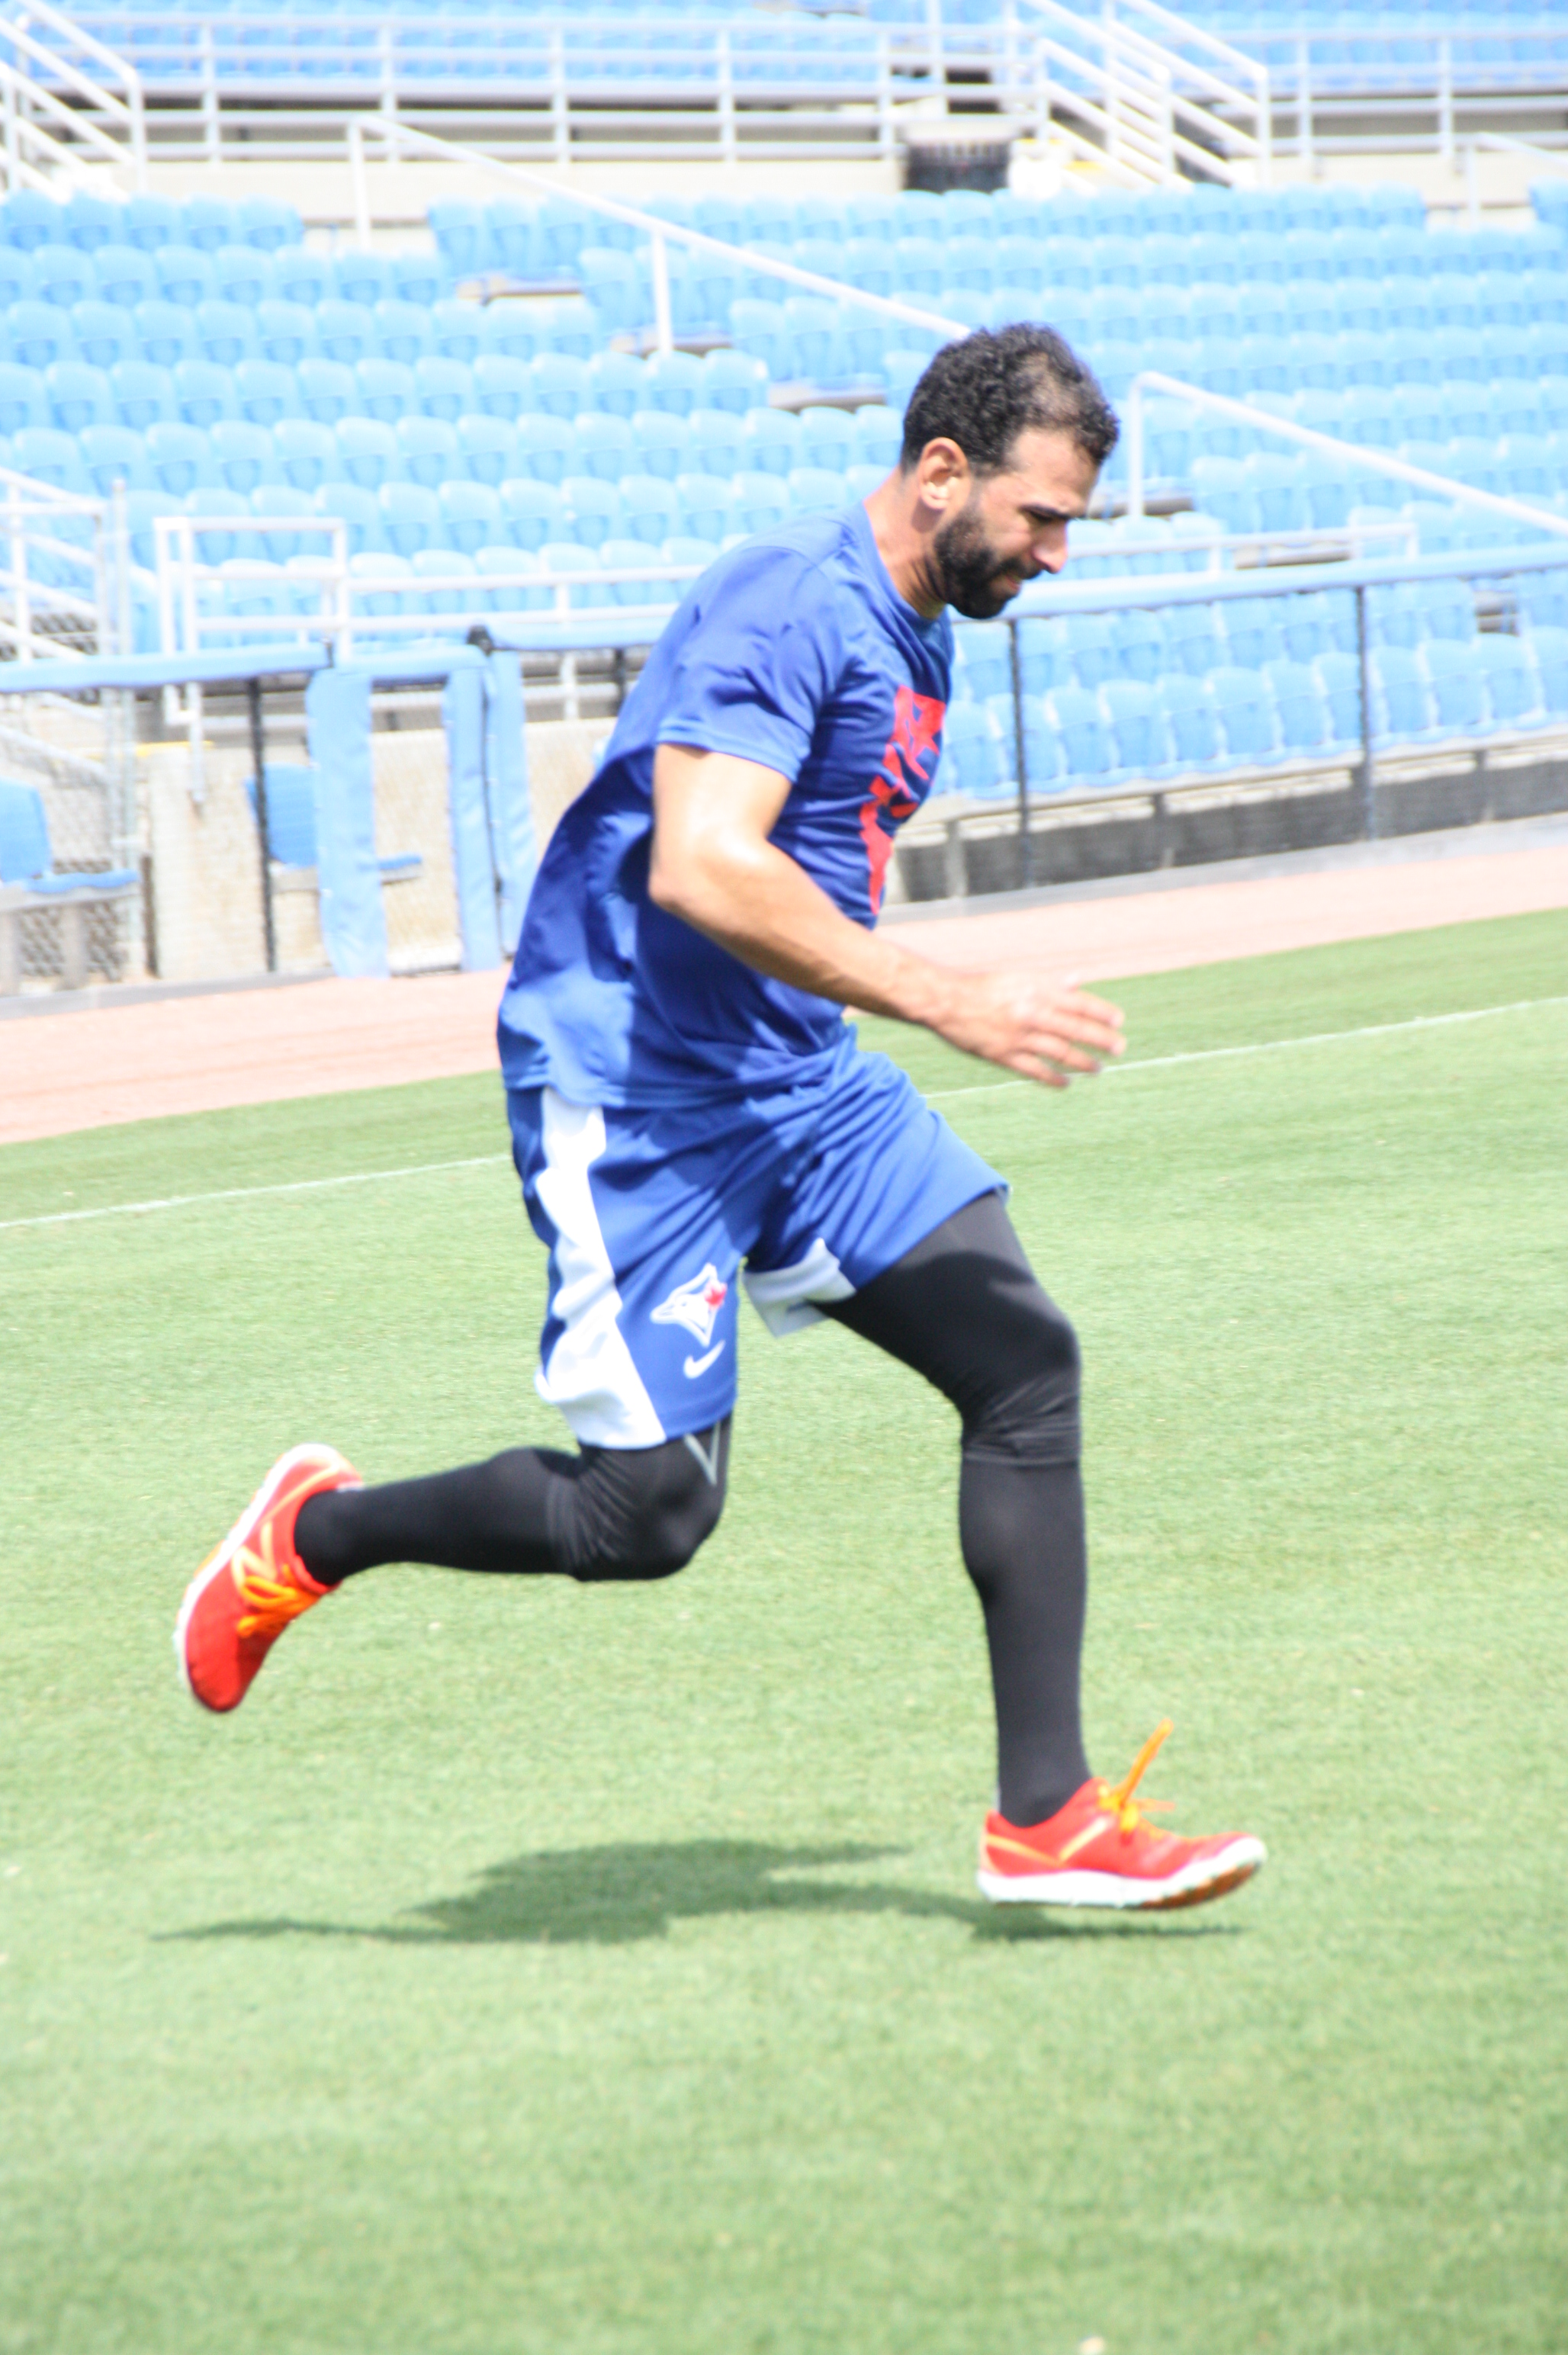 Toronto Blue Jays RF Jose Bautista (right leg) appears to have no problems running on the outfield turf at Florida Auto Exchange Stadium on Thursday. (EDDIE MICHELS/PHOTO)